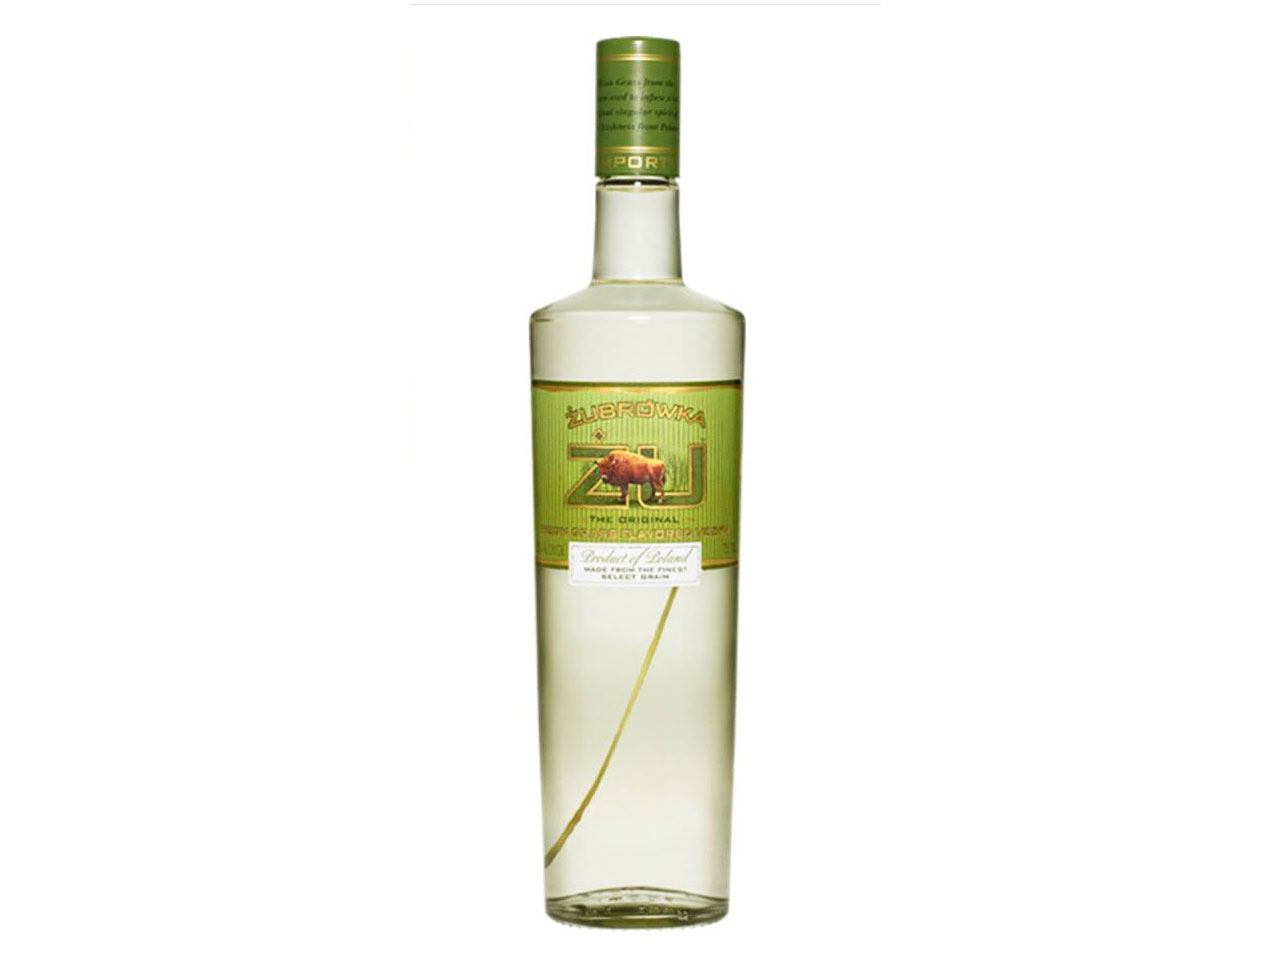 ZU Zubrówka Bison Grass Vodka